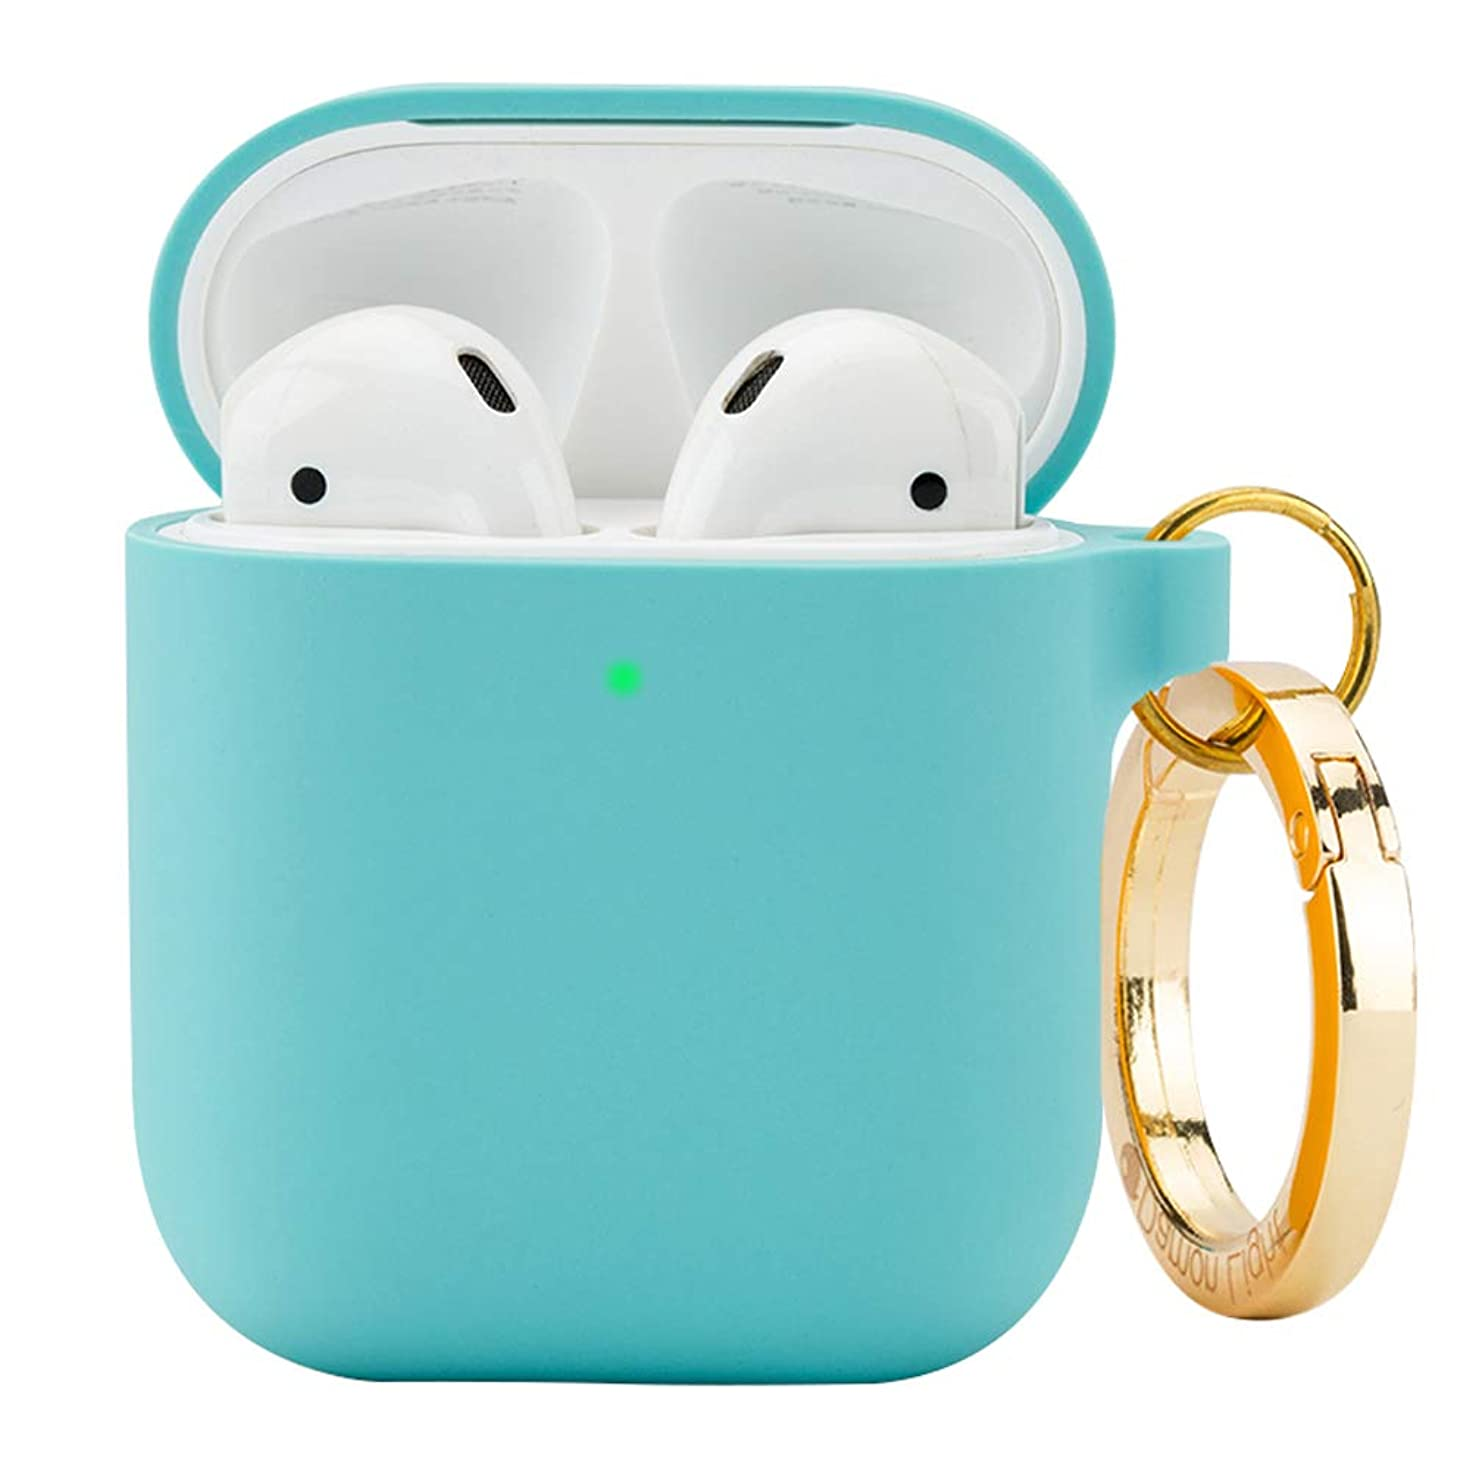 DamonLight Premium Silicone Airpods Case with Carabiner [Front LED Visible][with no Hinge] Full Protective Cover Skin Compatible with Apple Airpods 1&2 (Ice Blue)